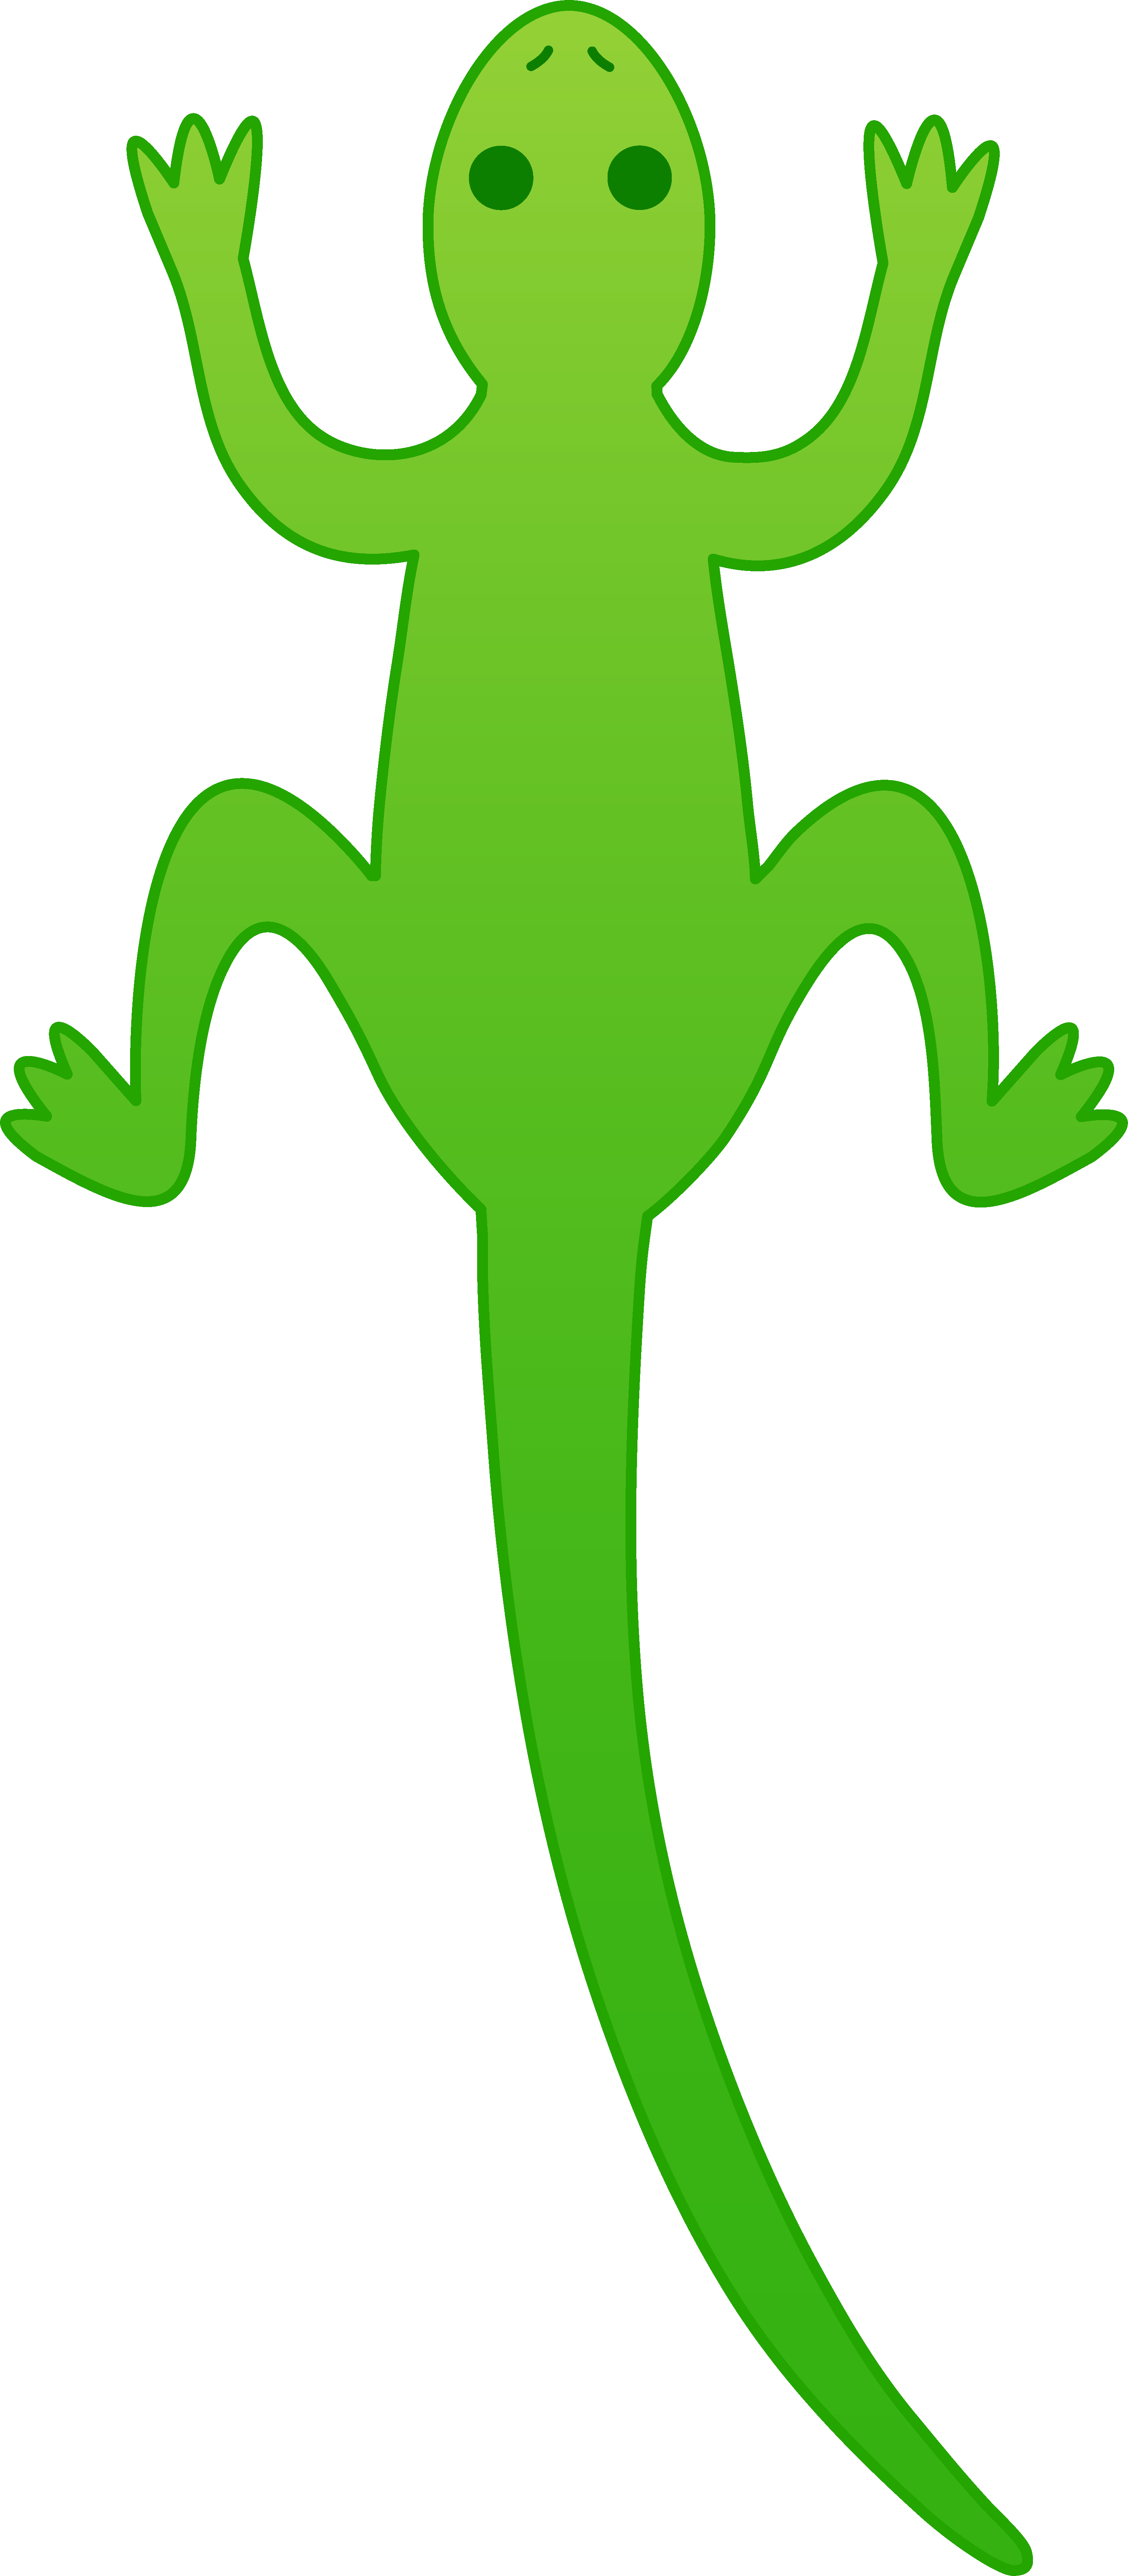 Gecko free royalty free clipart graphic free download Free Gecko Cliparts, Download Free Clip Art, Free Clip Art on ... graphic free download